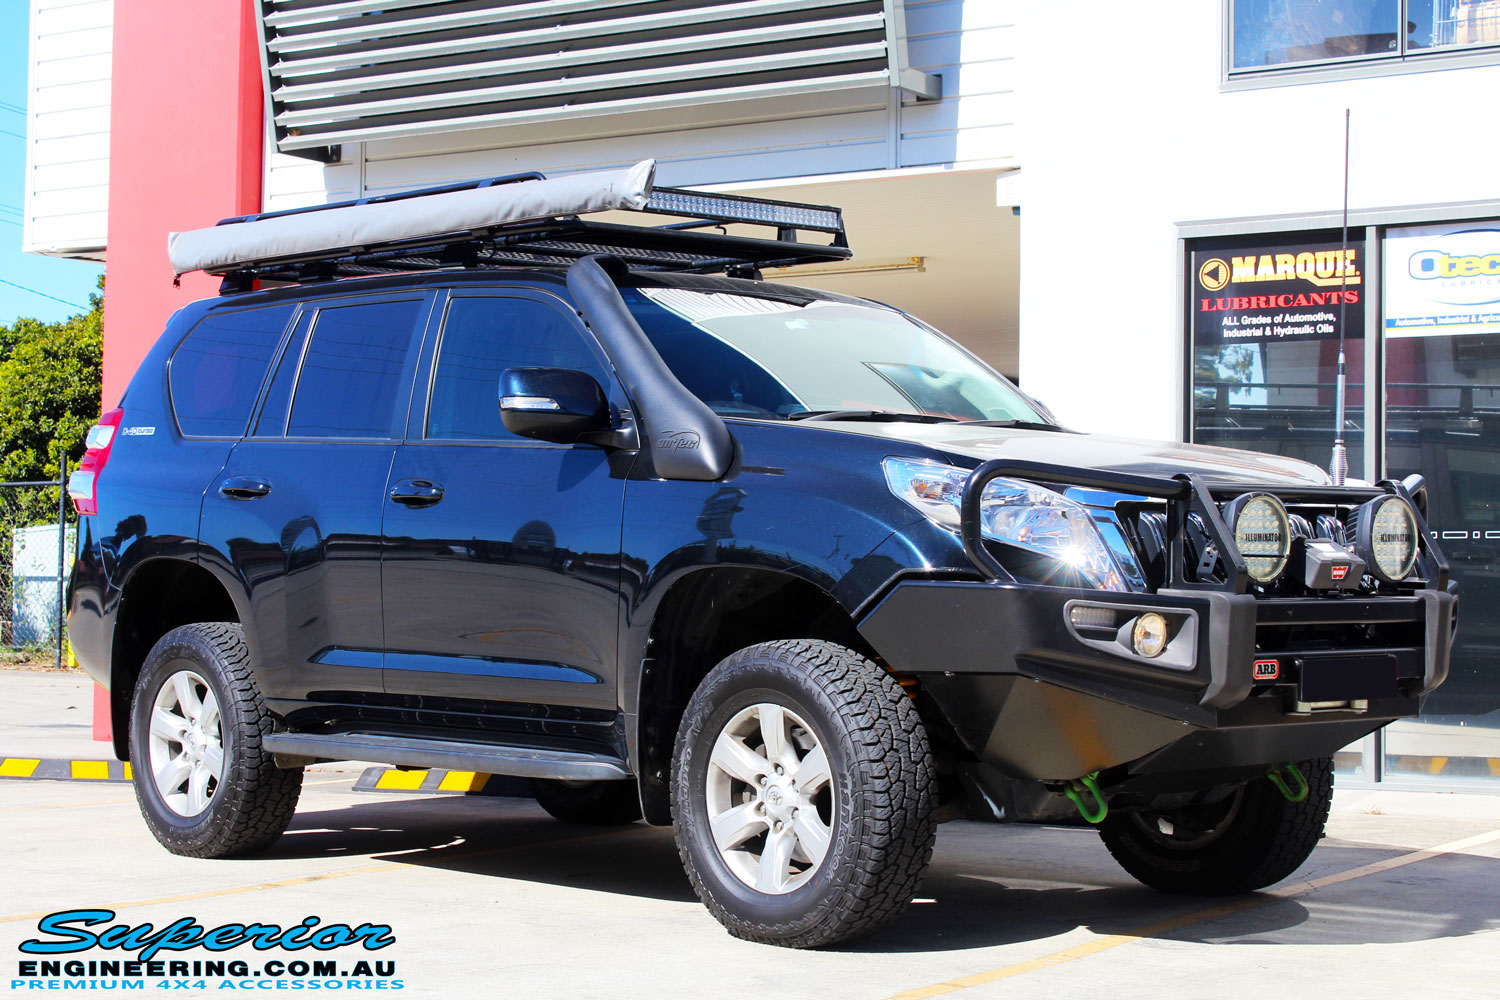 """Right front side view of a Toyota 150 Landcruiser Prado in Blue after fitment of a 2"""" Inch Lift Kit & Heavy Duty Towing Points"""